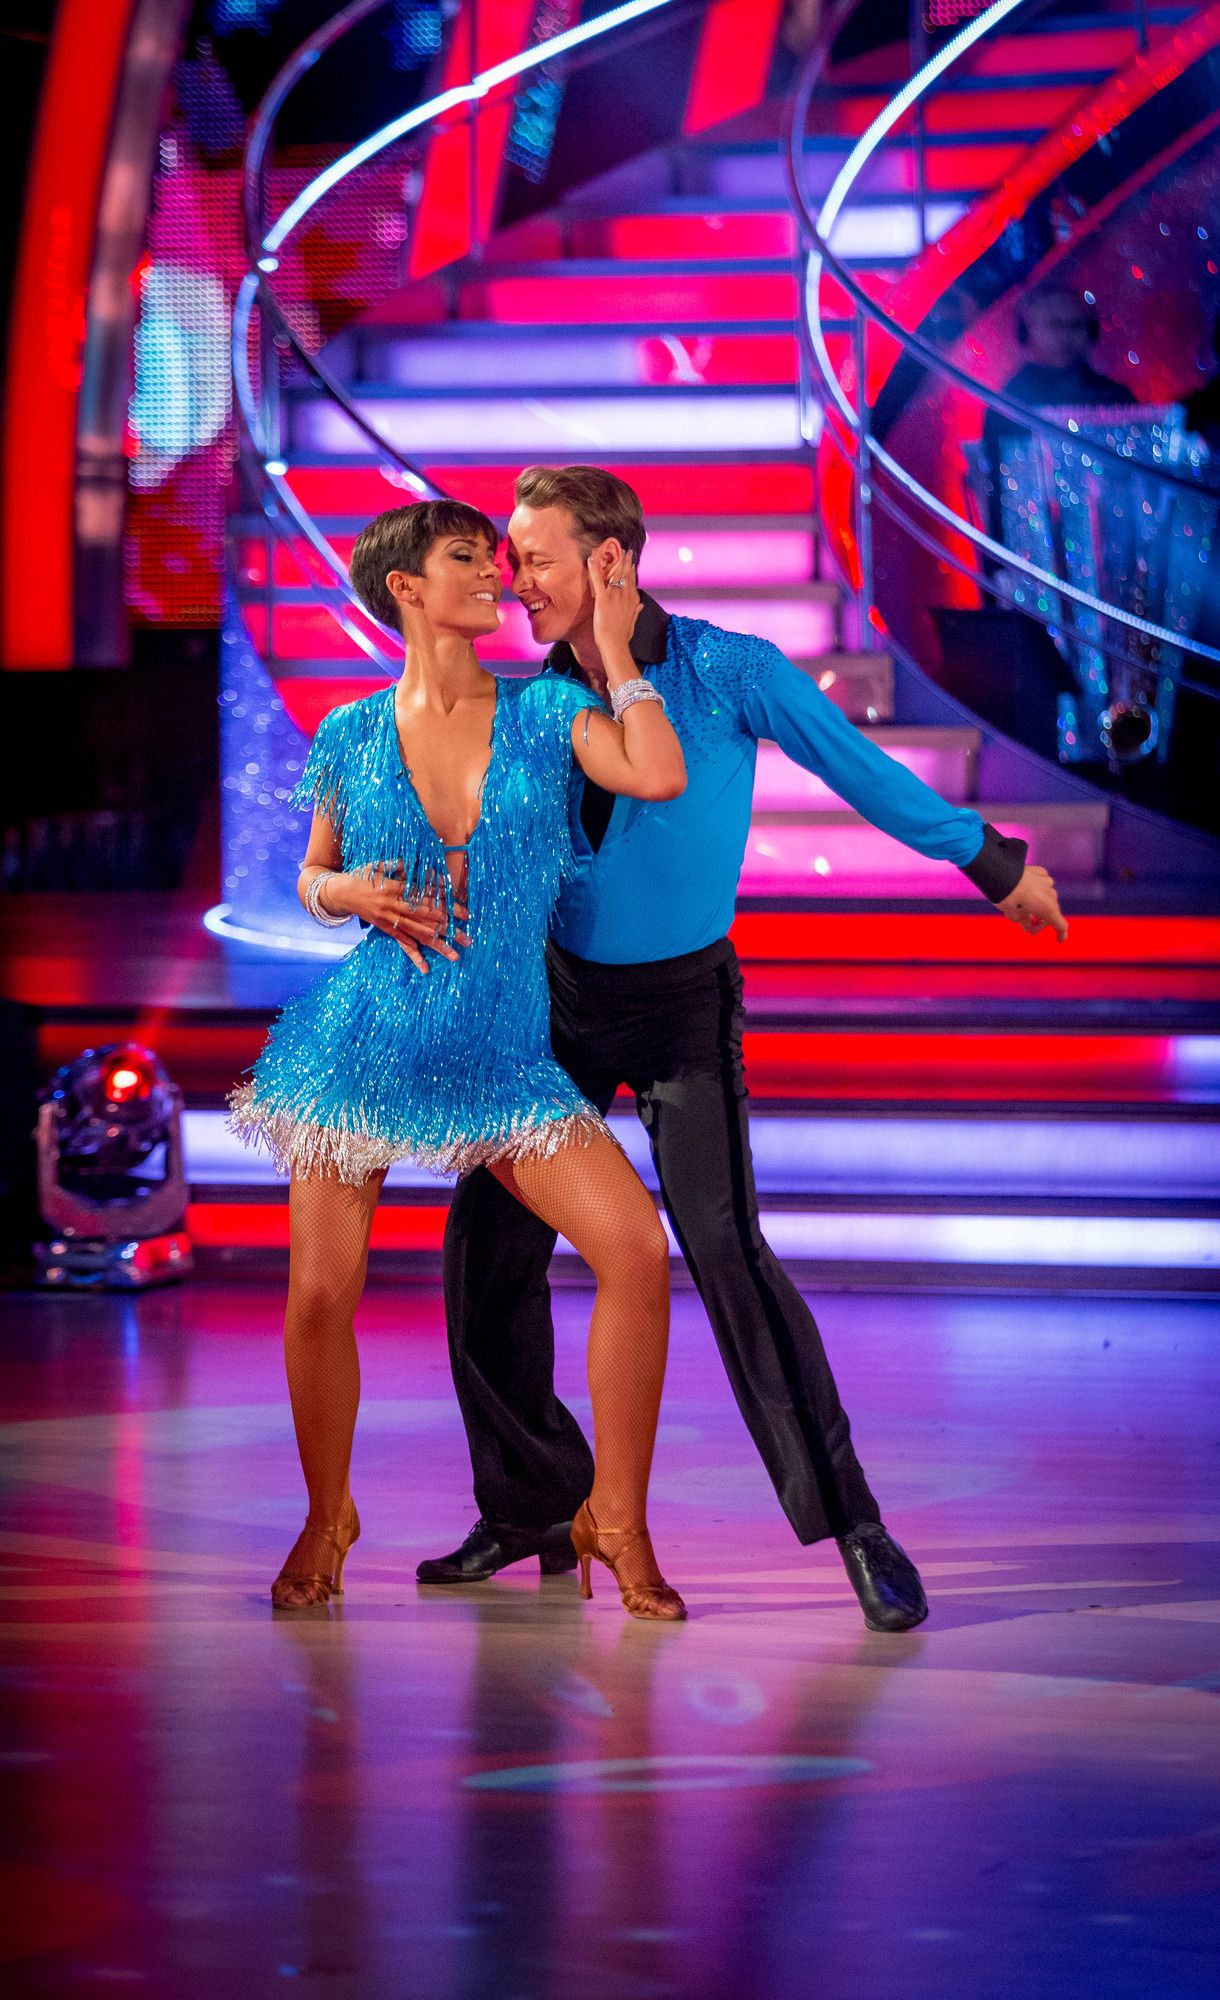 Strictly Come Dancing 2014: Frankie Bridge edges ahead of Jake Wood as favourite to win